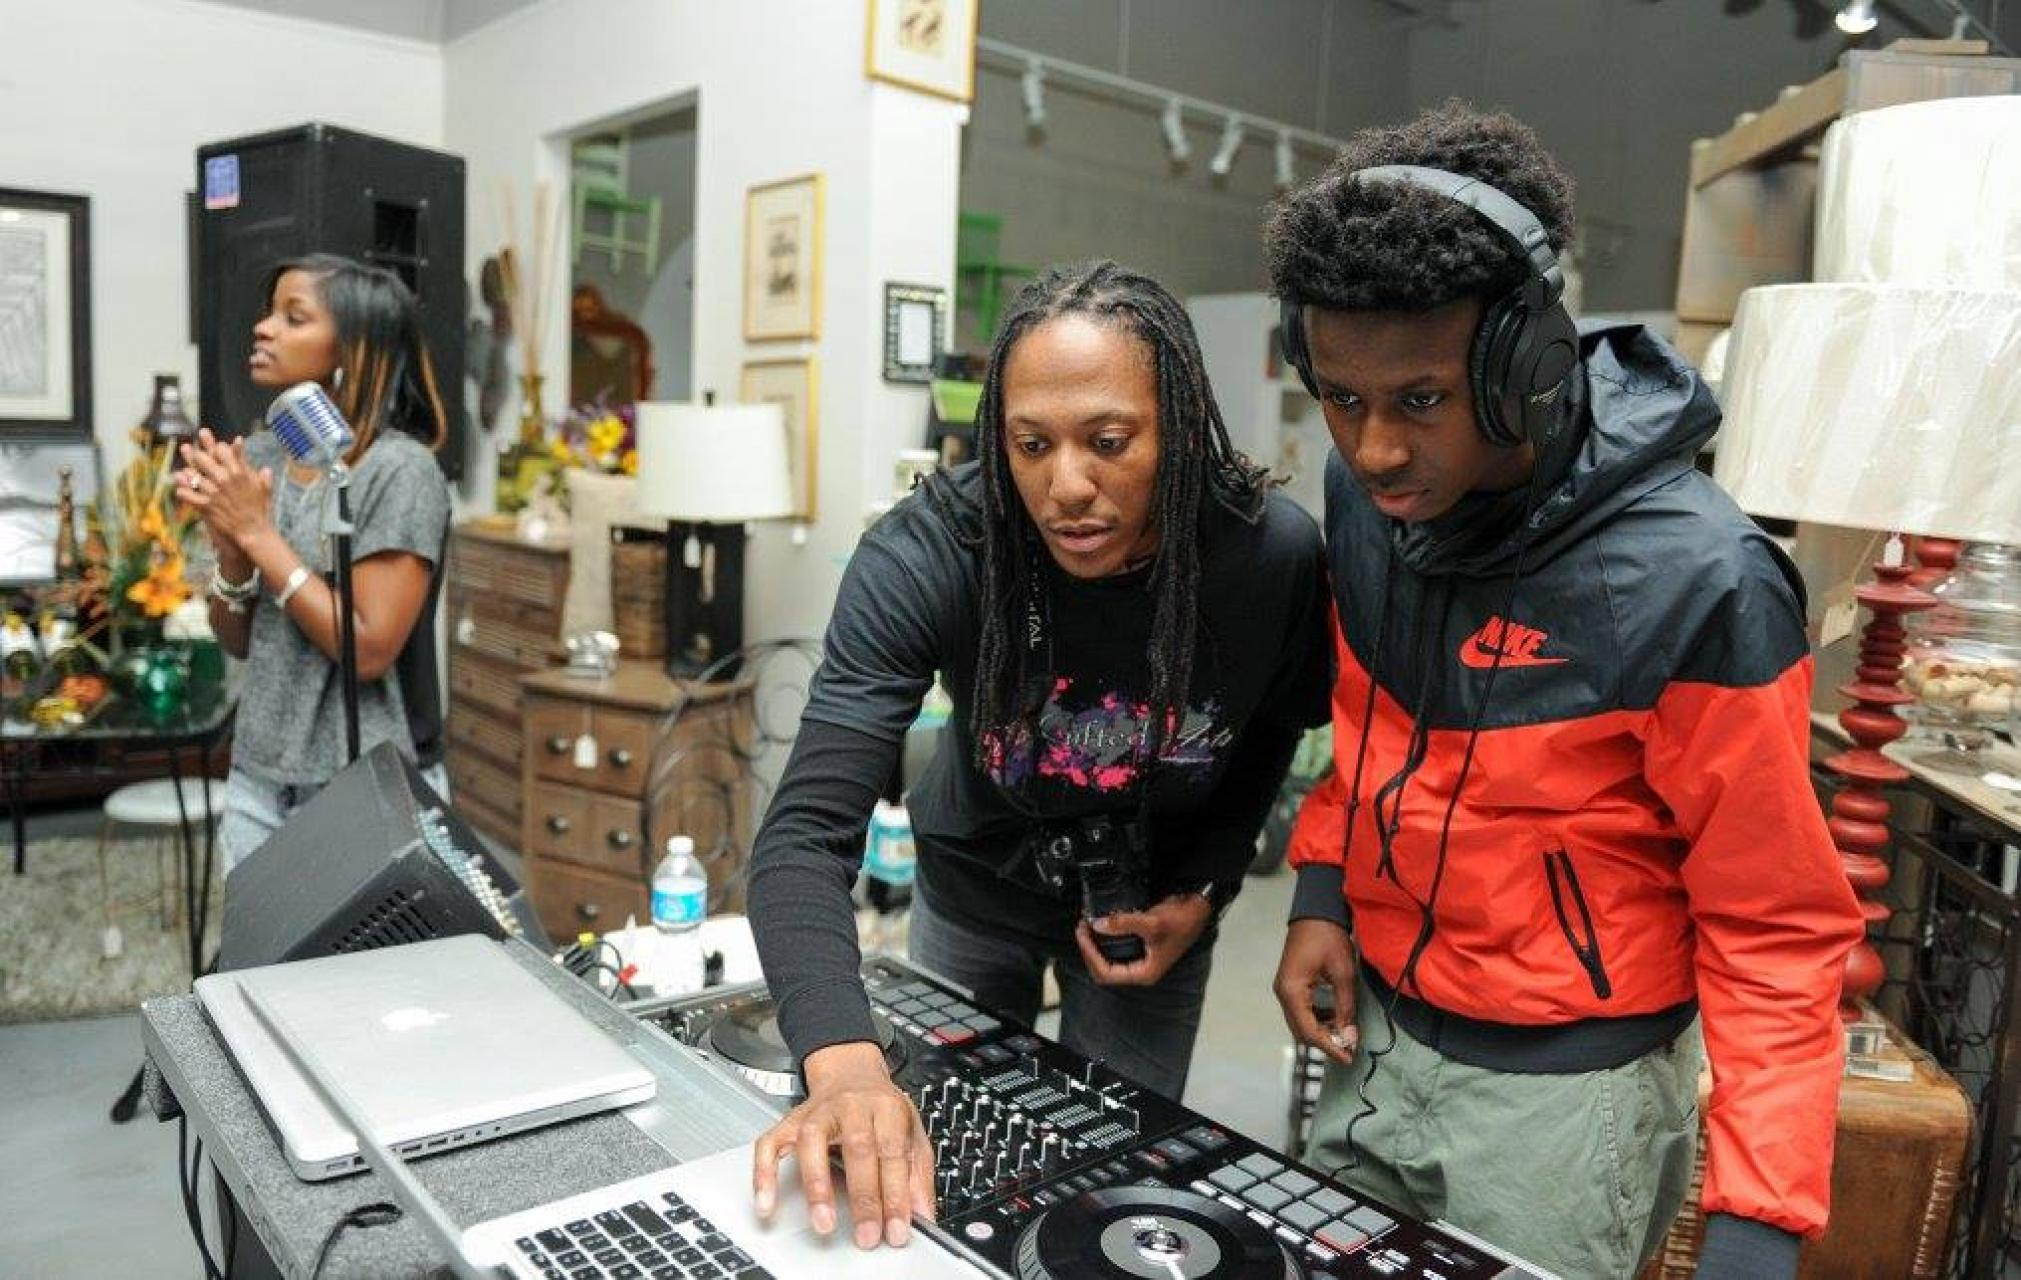 Clarence 'CJ' Morgan DJing with a TheGifted Arts student at a 2016 event